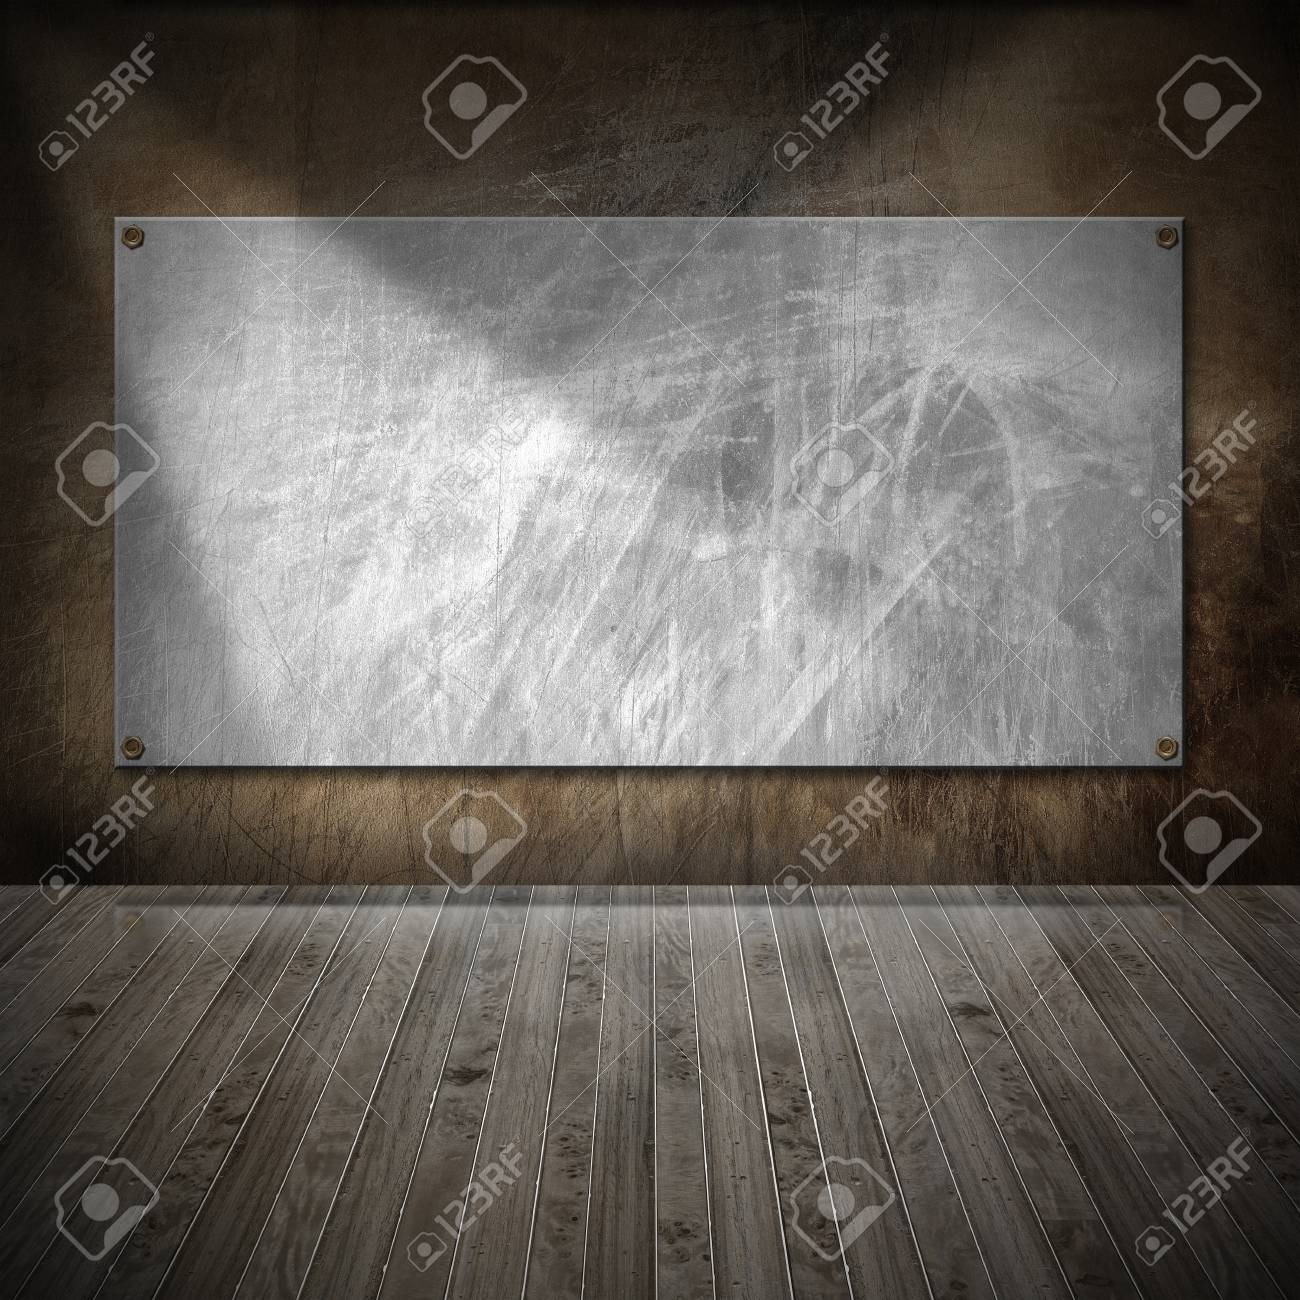 Brown metallic and wooden grunge interior with empty frame Stock Photo - 17291404